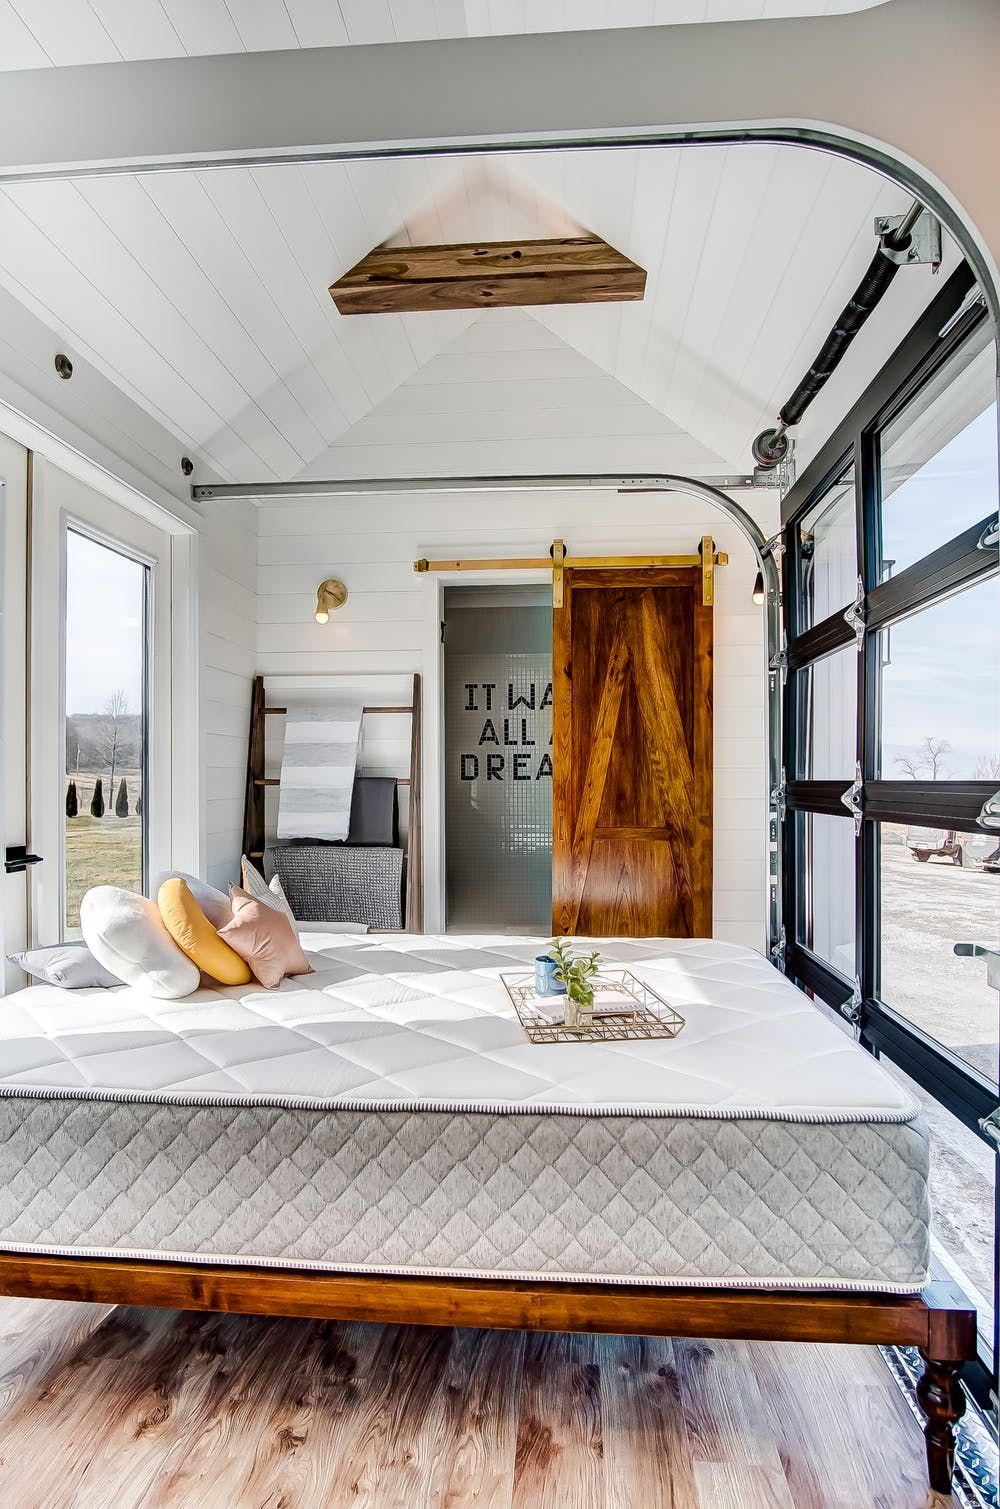 This Tiny House Is 238 Square Feet of Home Decor Inspiration | Brit + Co